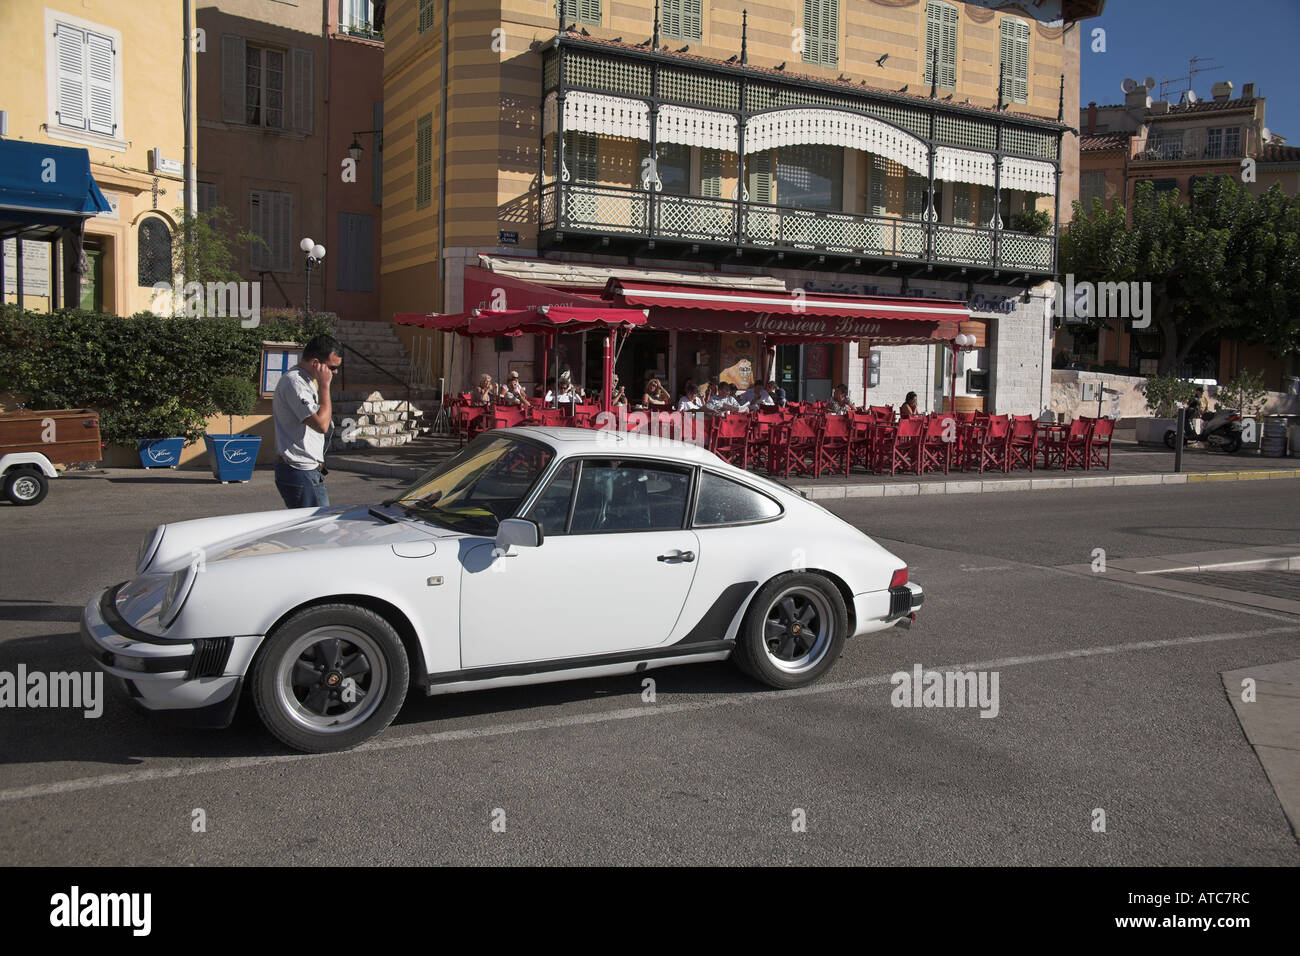 Stock photograph of Porsche 911 parked at the harbour Cis. Man ...